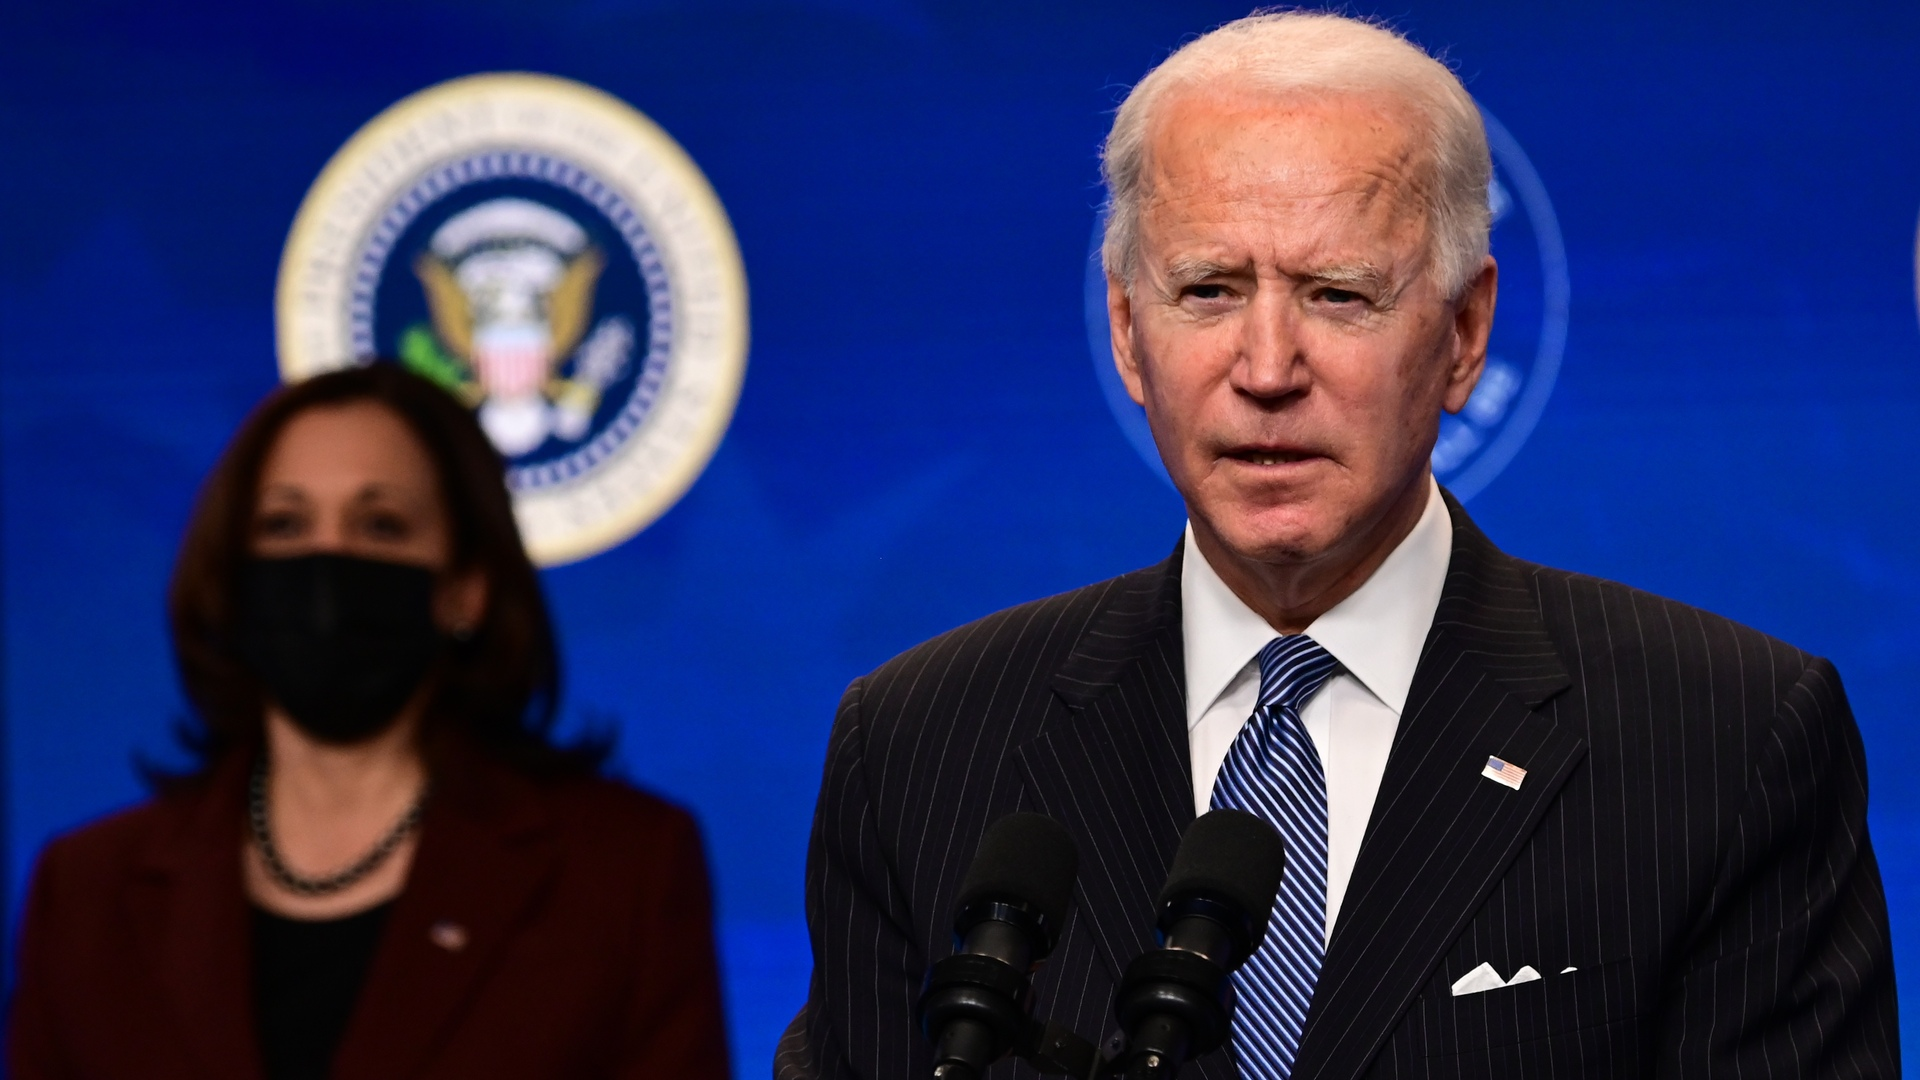 news.yahoo.com: Biden to announce executive action targeting racism against Asian Americans